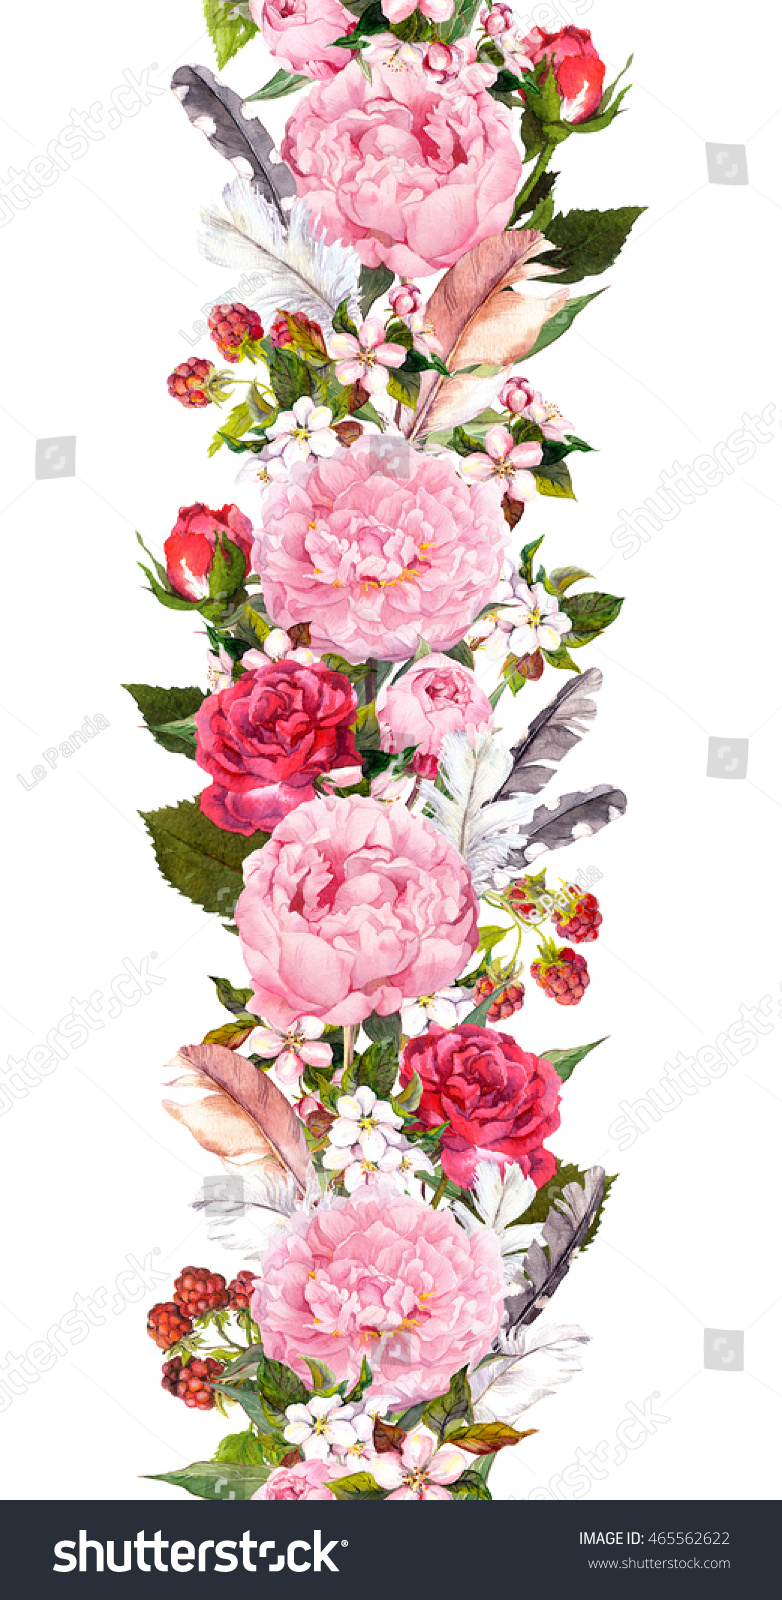 Floral Border With Pink Flowers Roses And Feathers Vintage